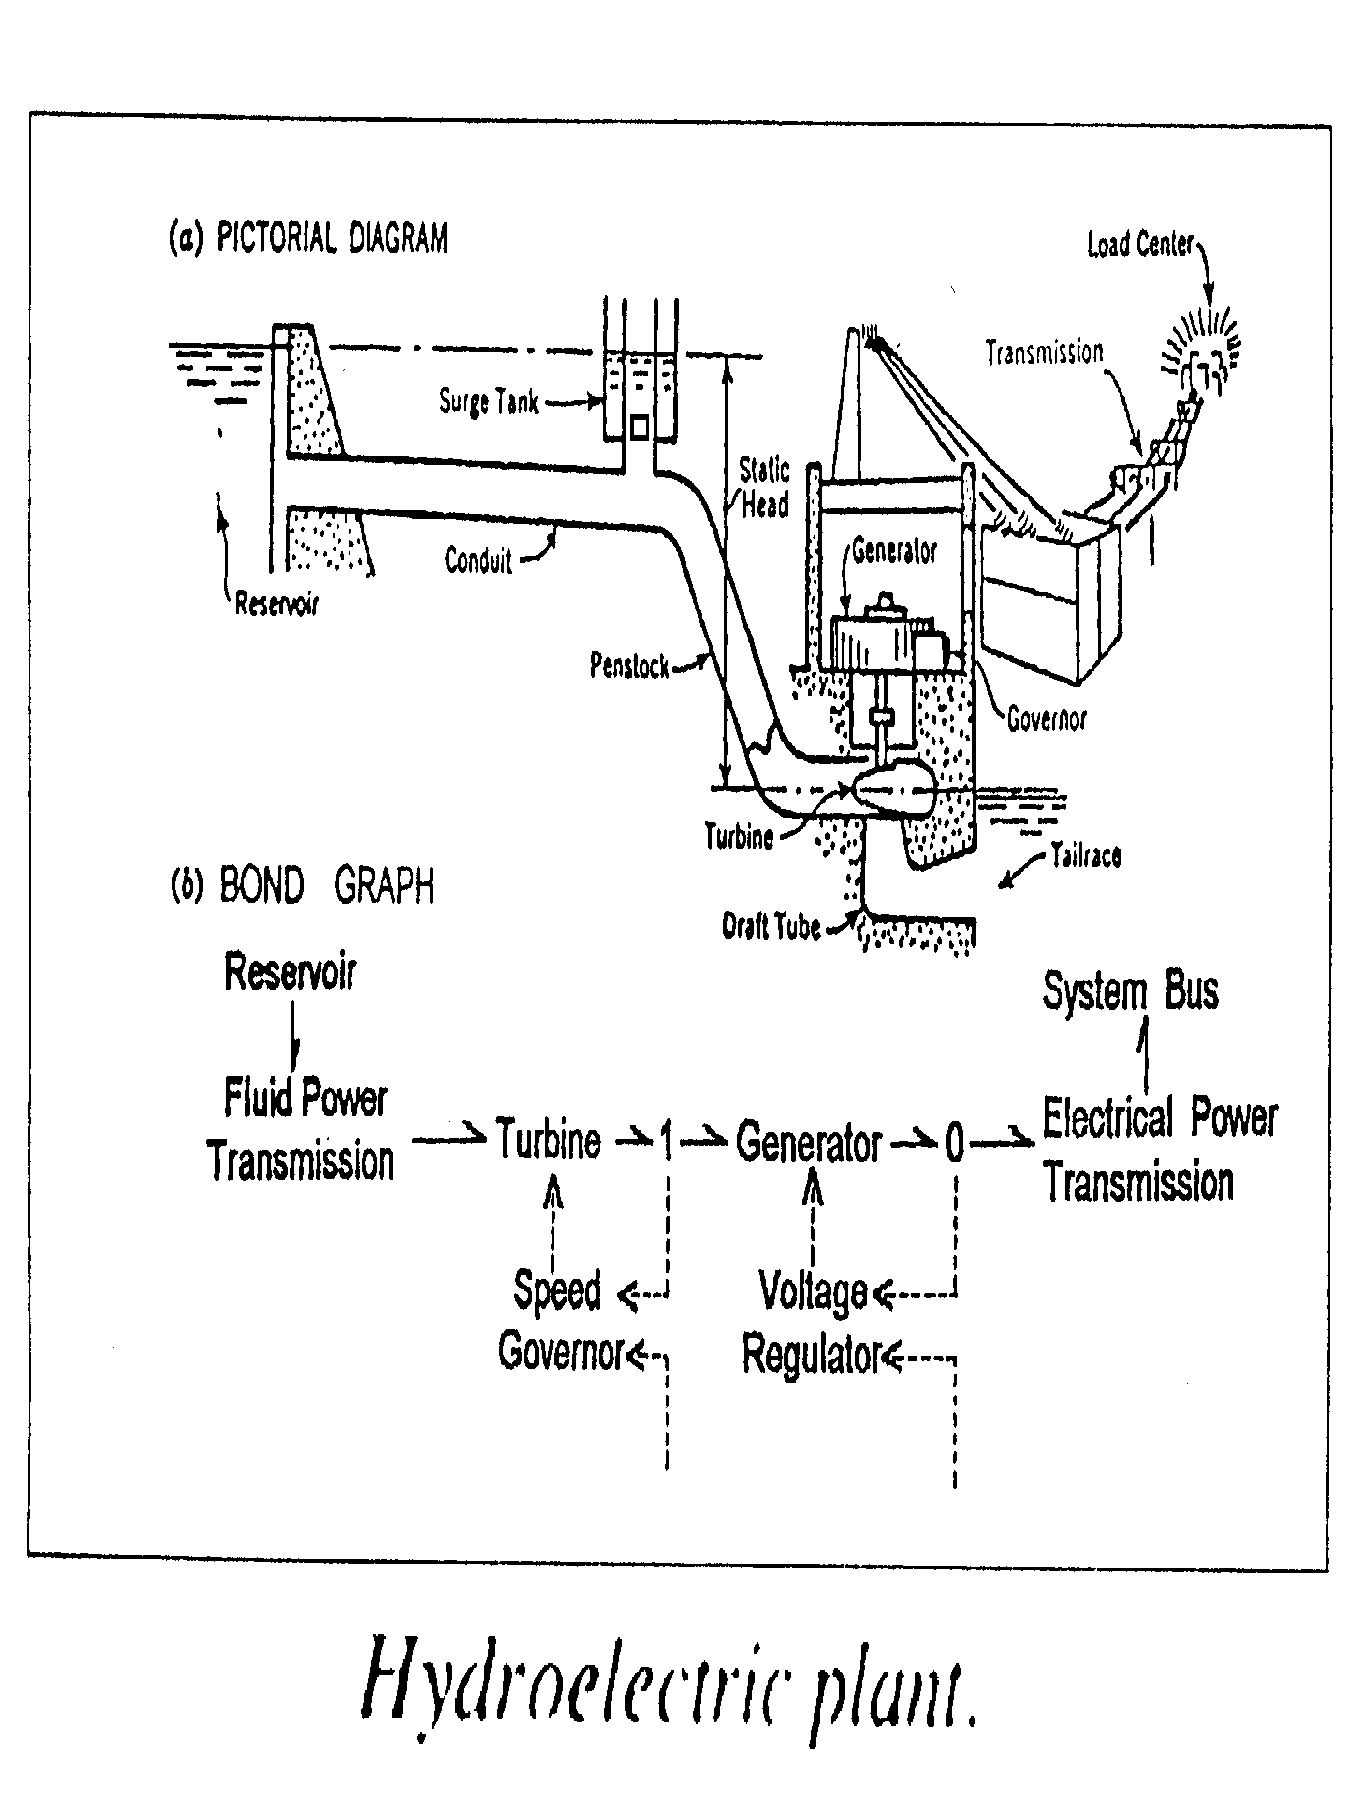 Paynter's bond graph of a hydroelectric plant